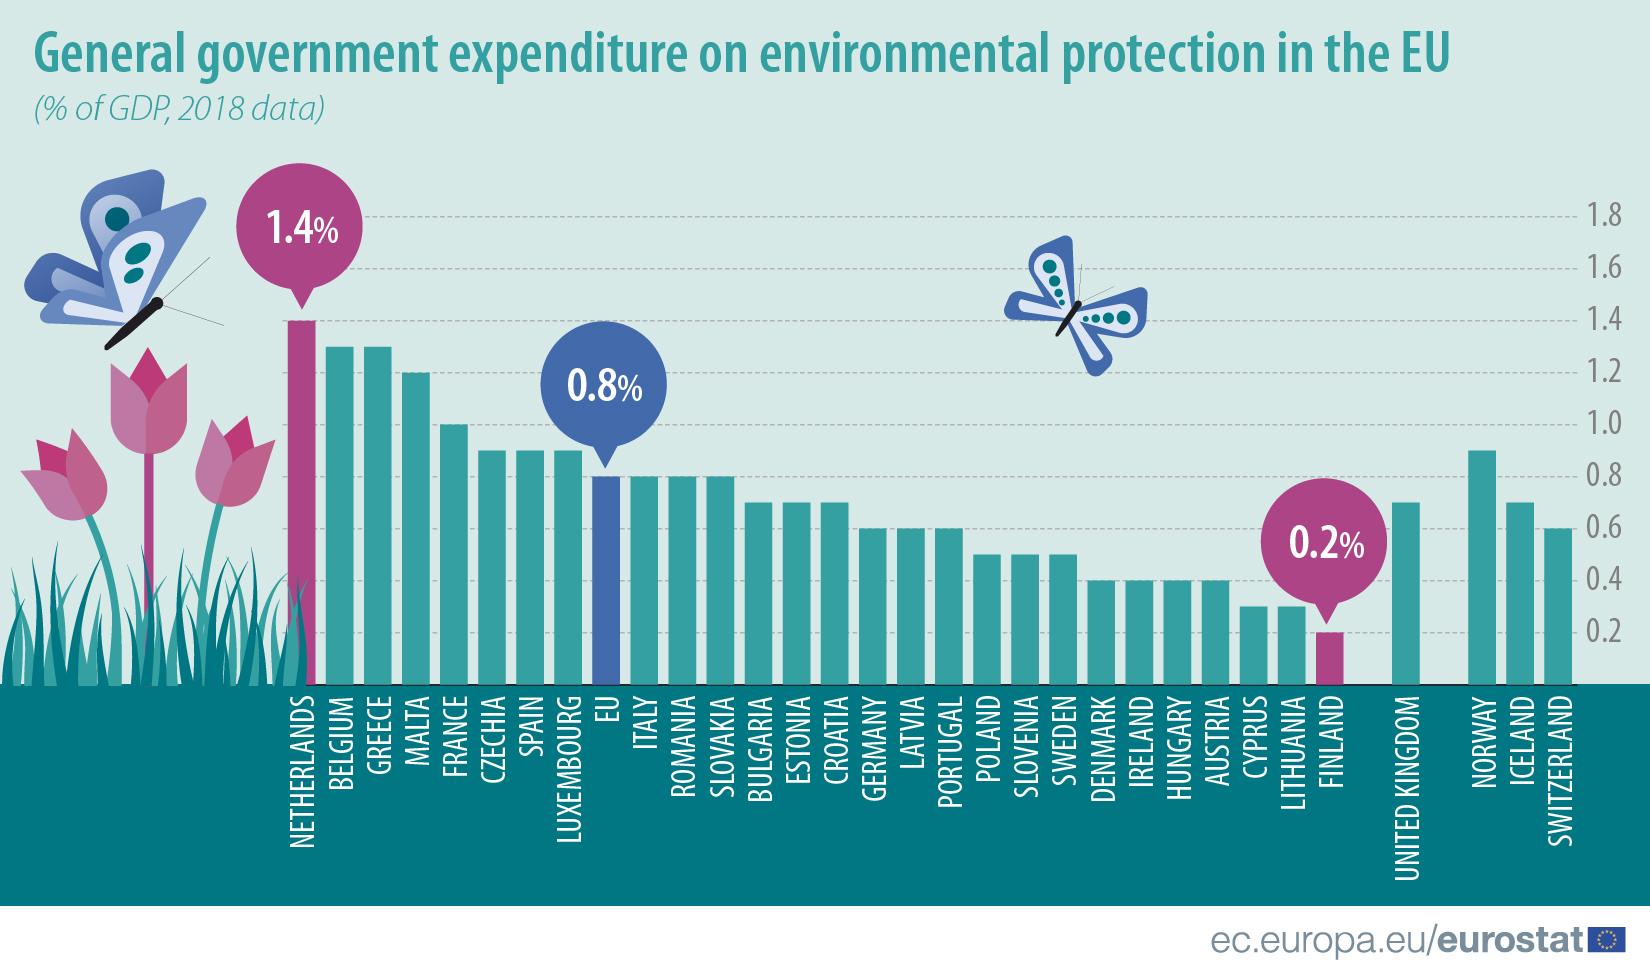 General government expenditure on environmental protection in the EU, 2018